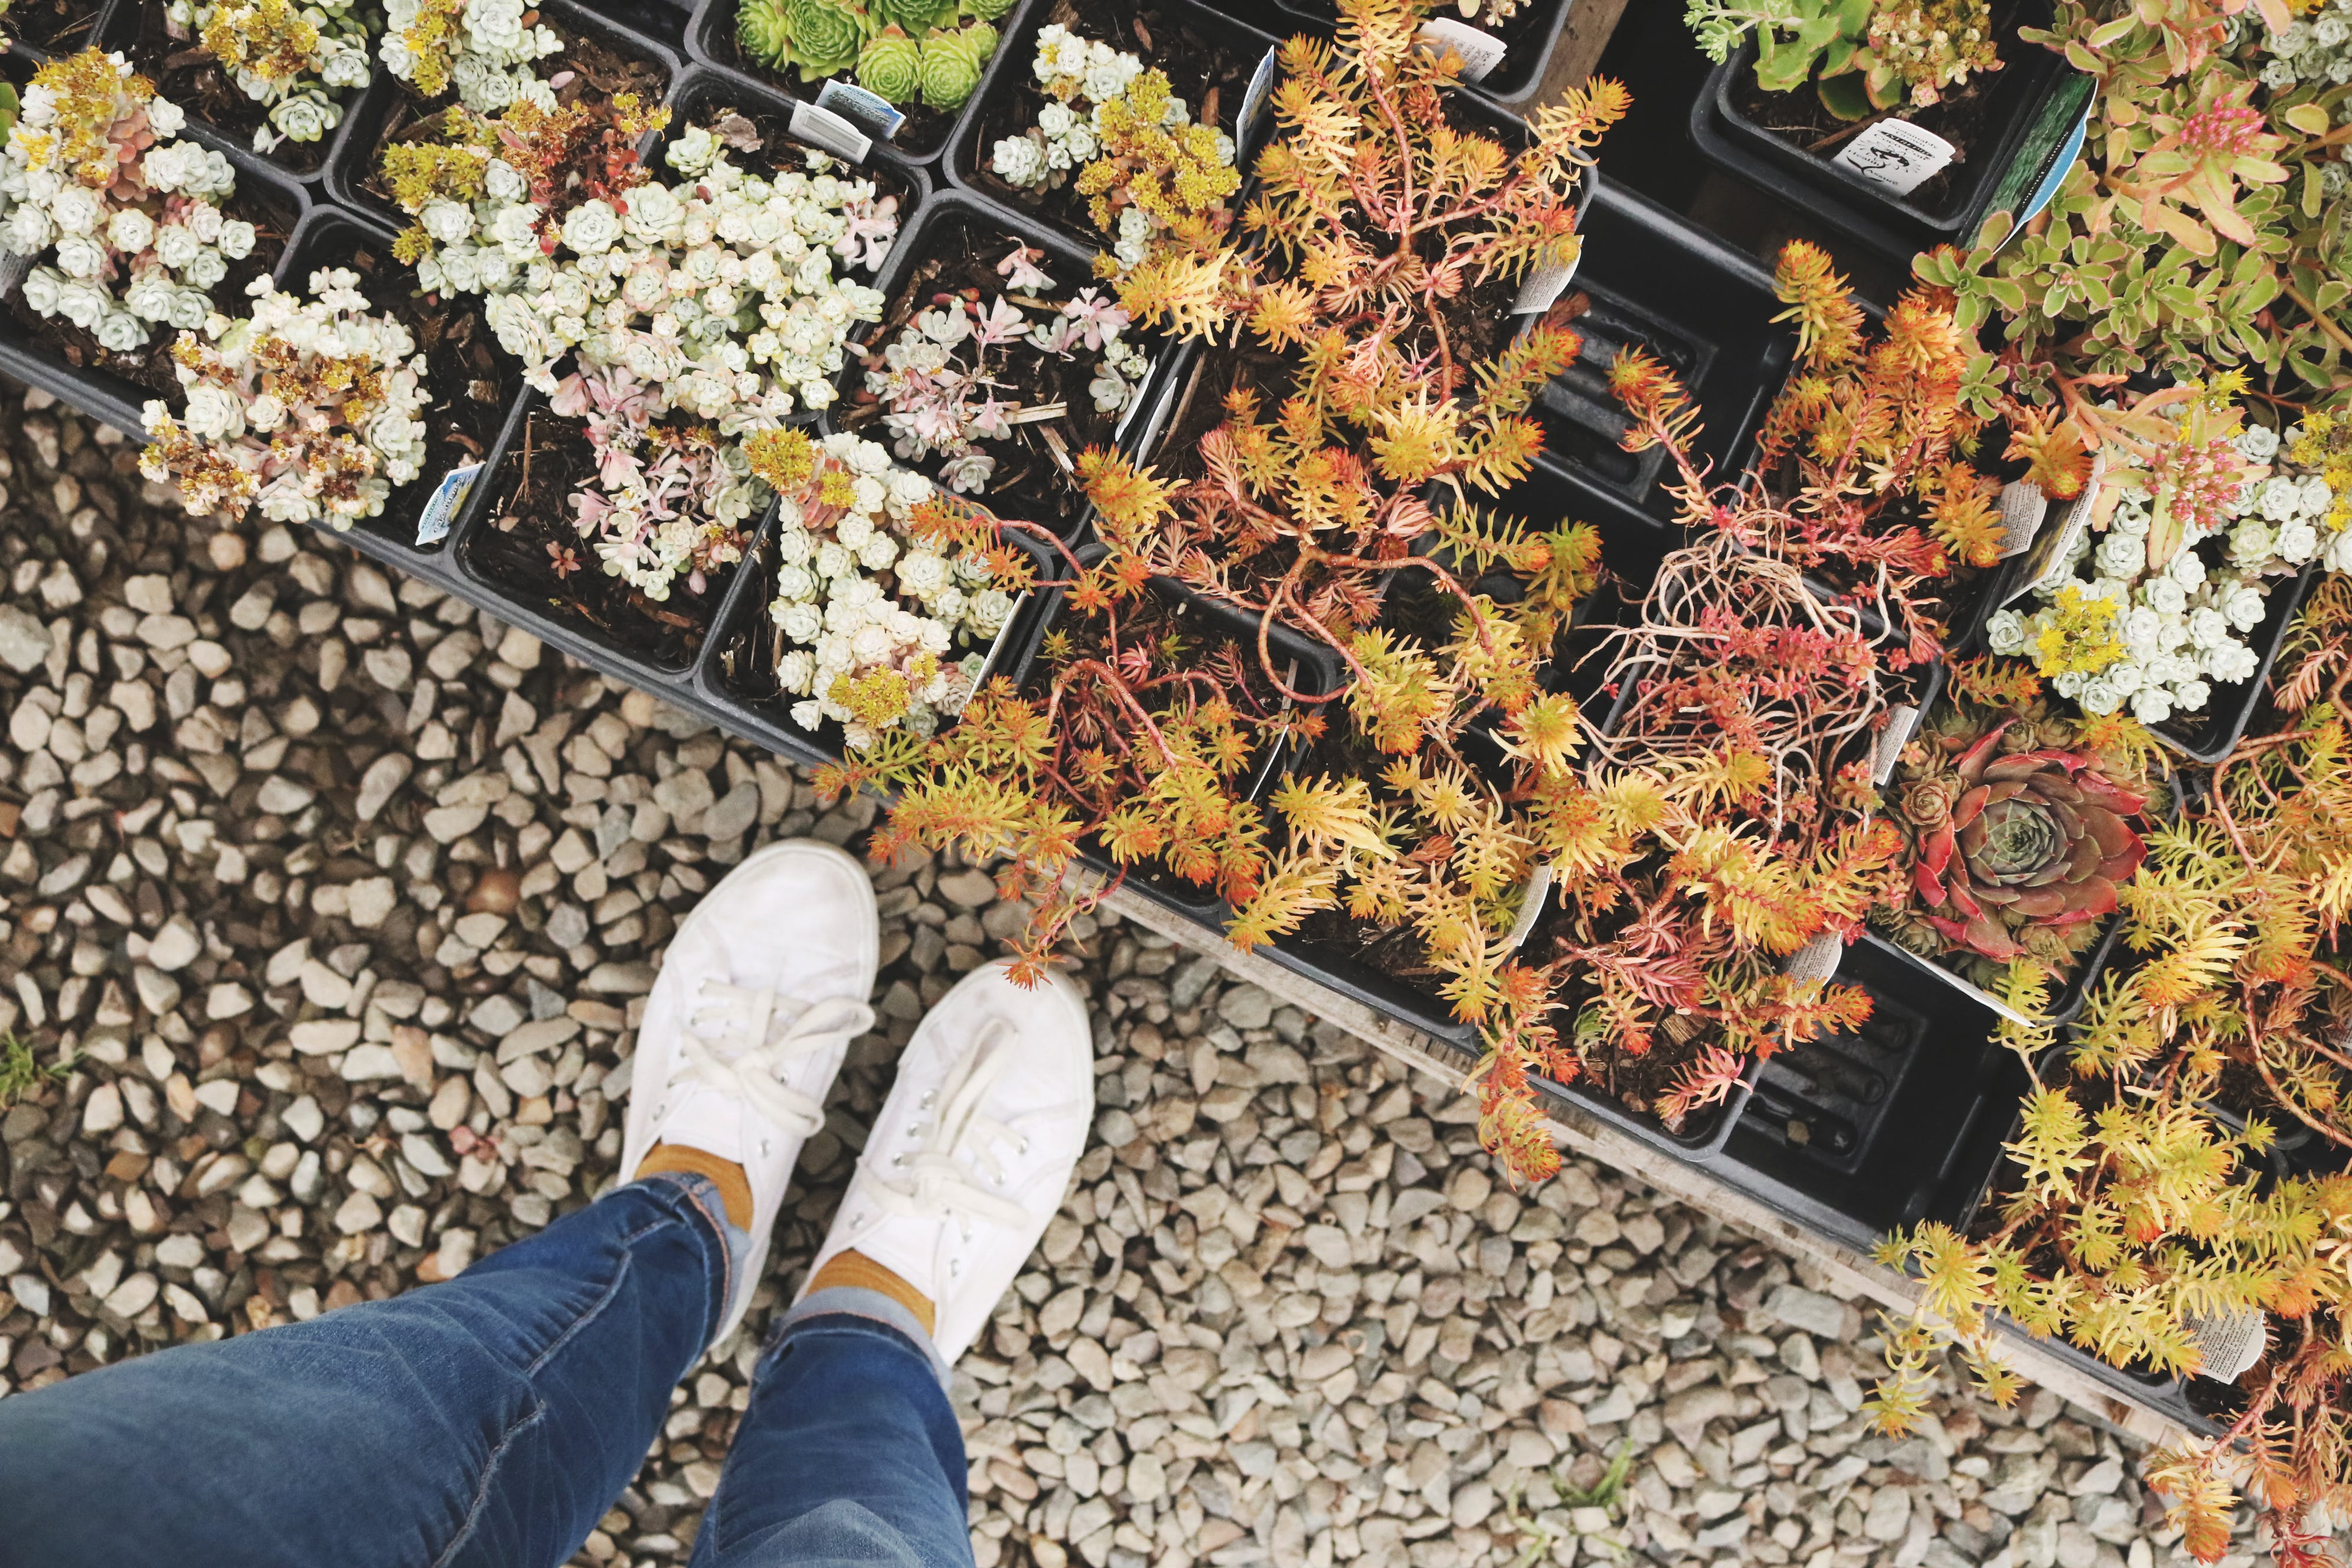 Person Wearing White Sneakers Standing Beside Flowers